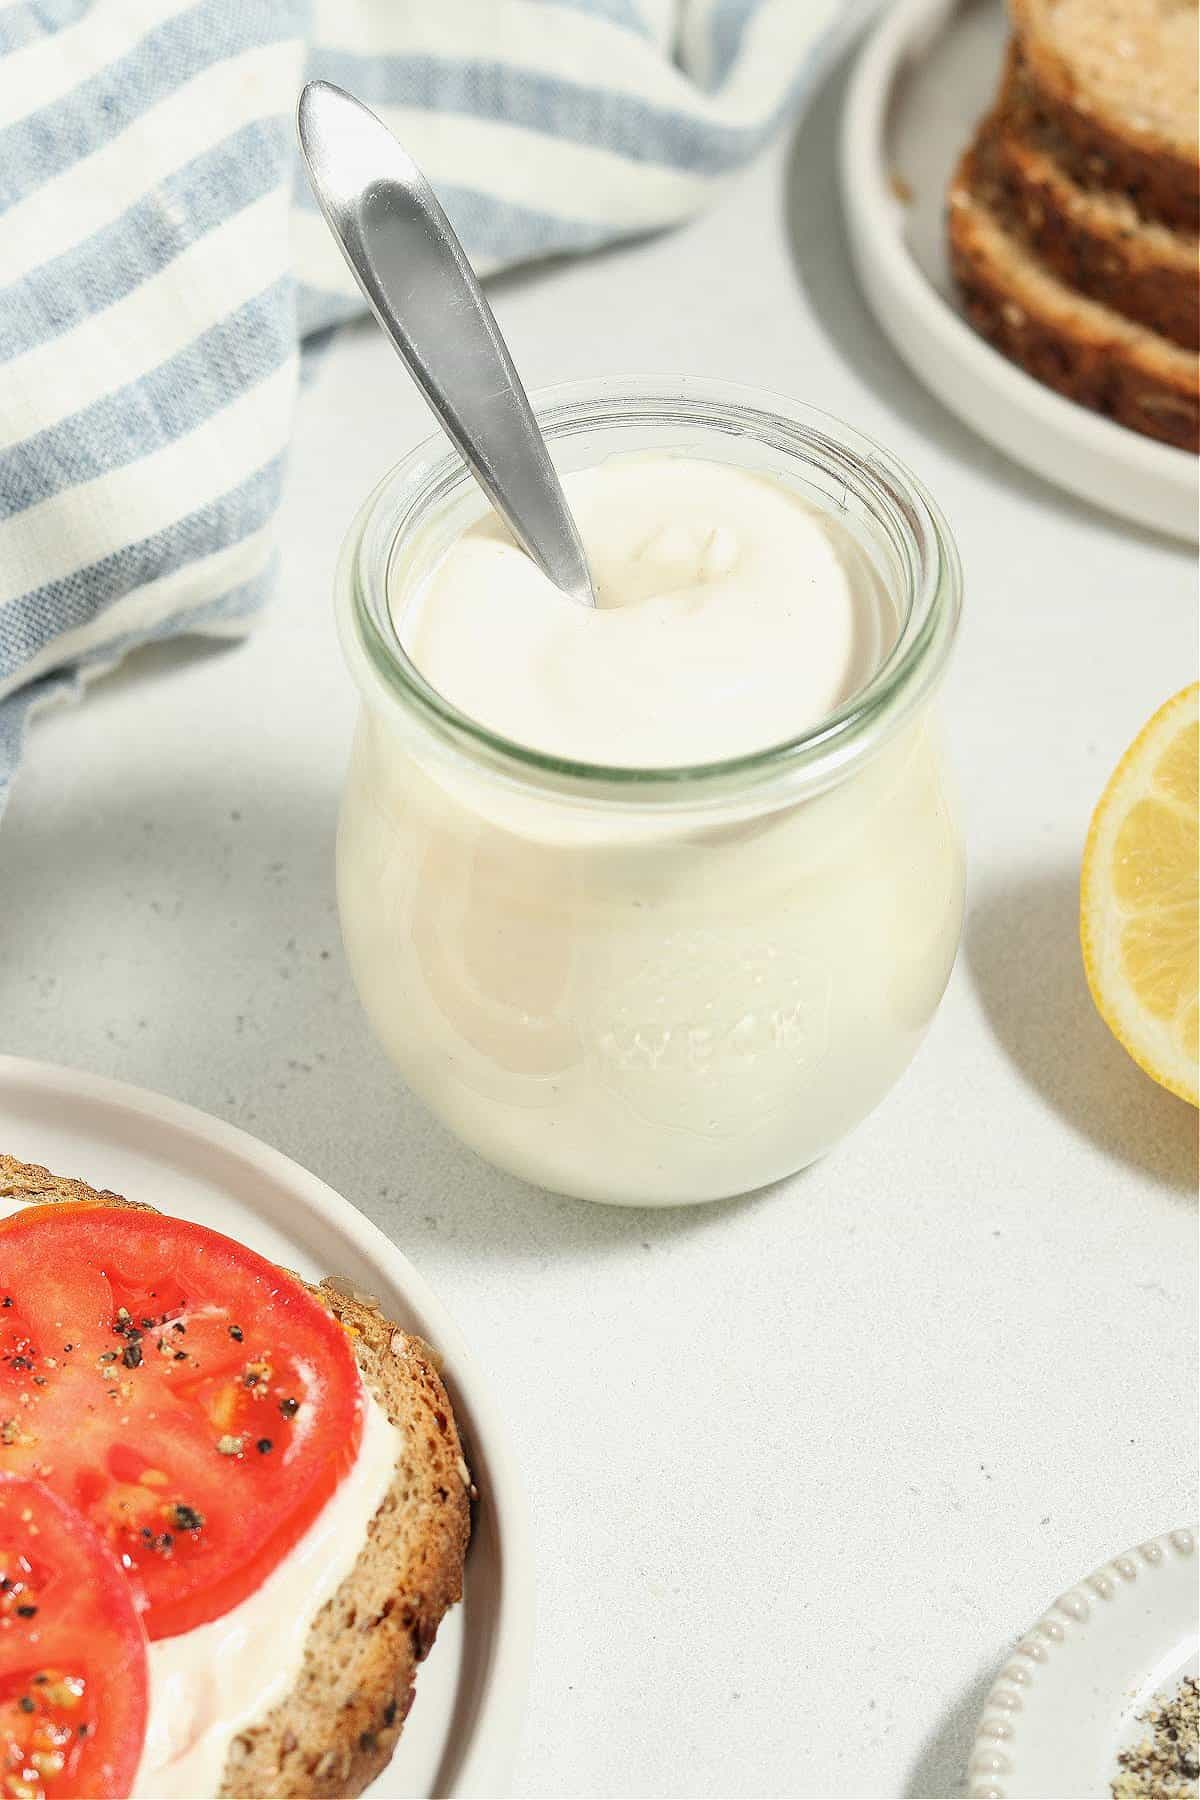 Close up view of vegan mayo in a jar with a spoon sticking out.